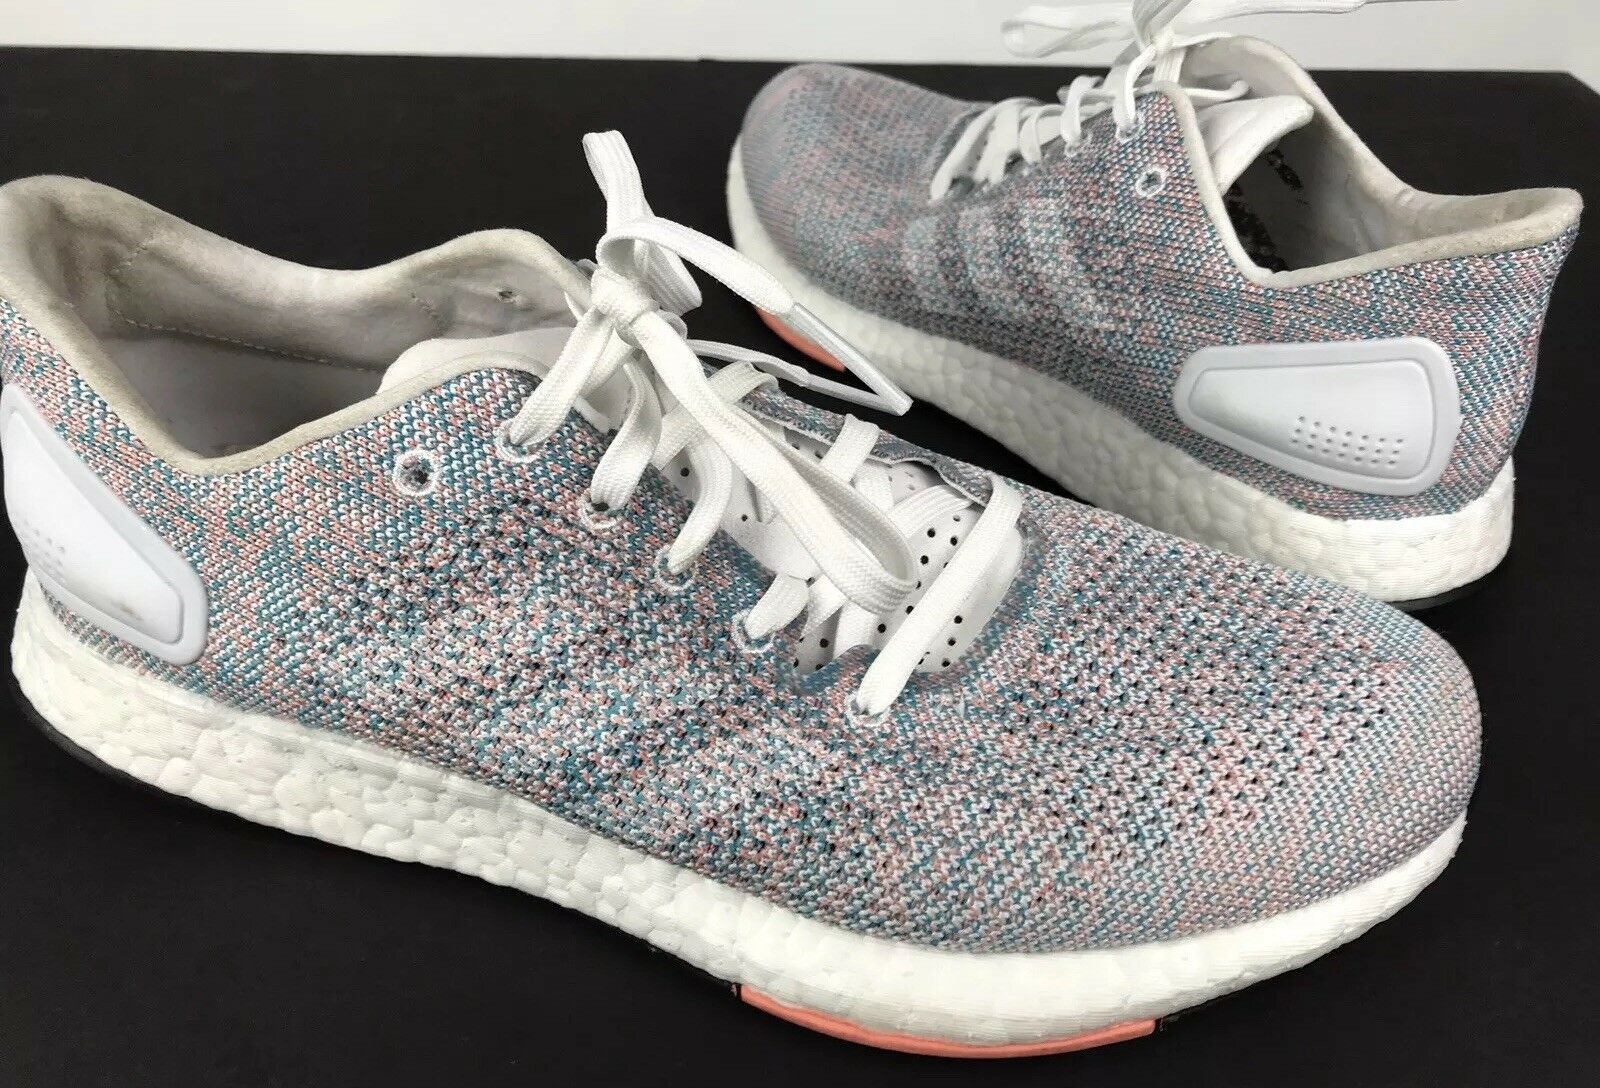 Womens Adidas PureBoost DPR Running shoes White White Chalk Coral B75670 Size 8.5